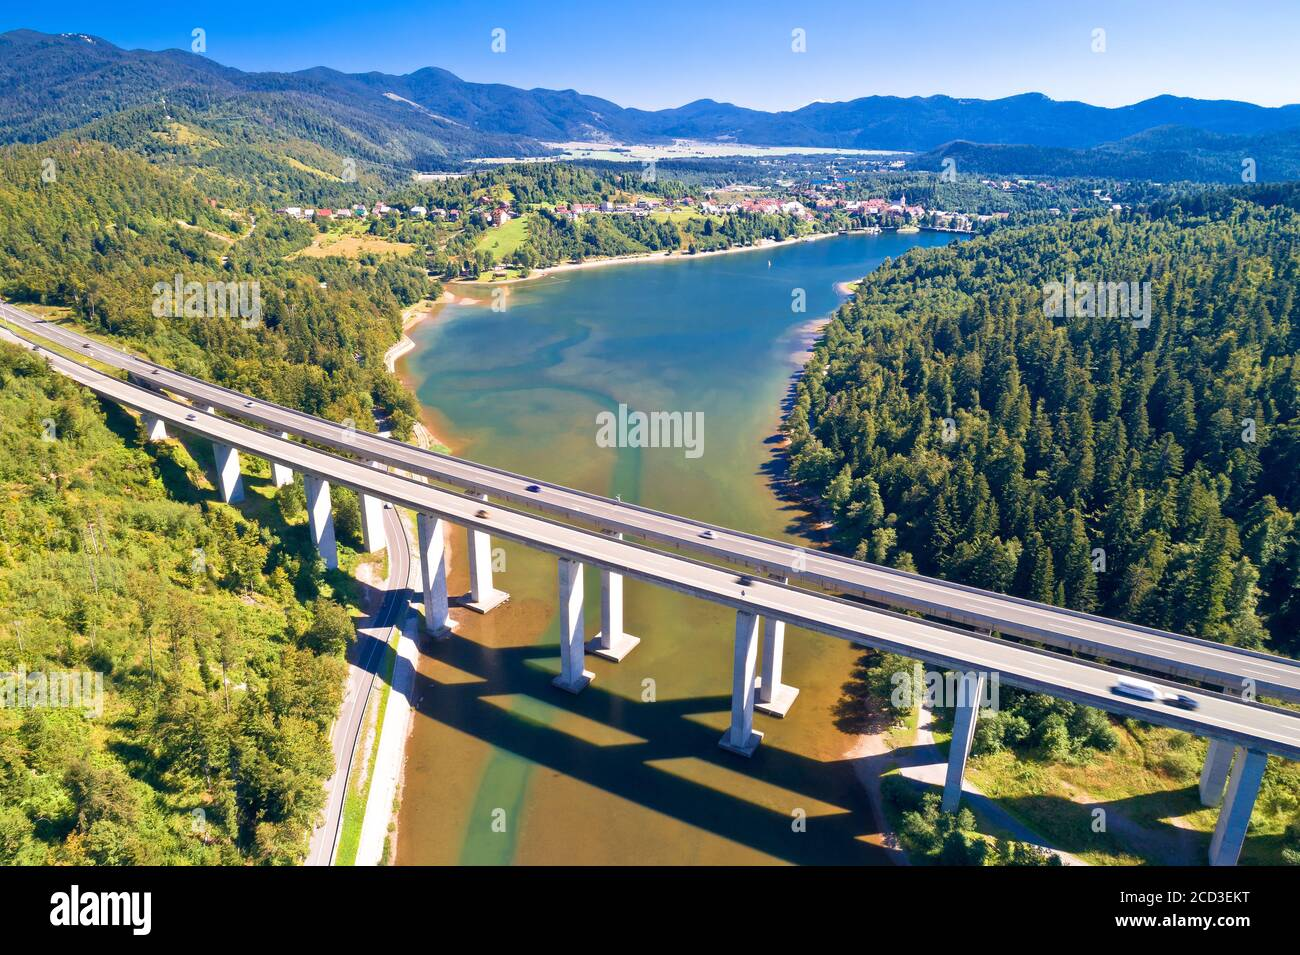 Viaduct Bajer above idyllic lake and town of Fuzine aerial view, Scenic highway A6 in Gorski Kotar region of Croatia, Stock Photo